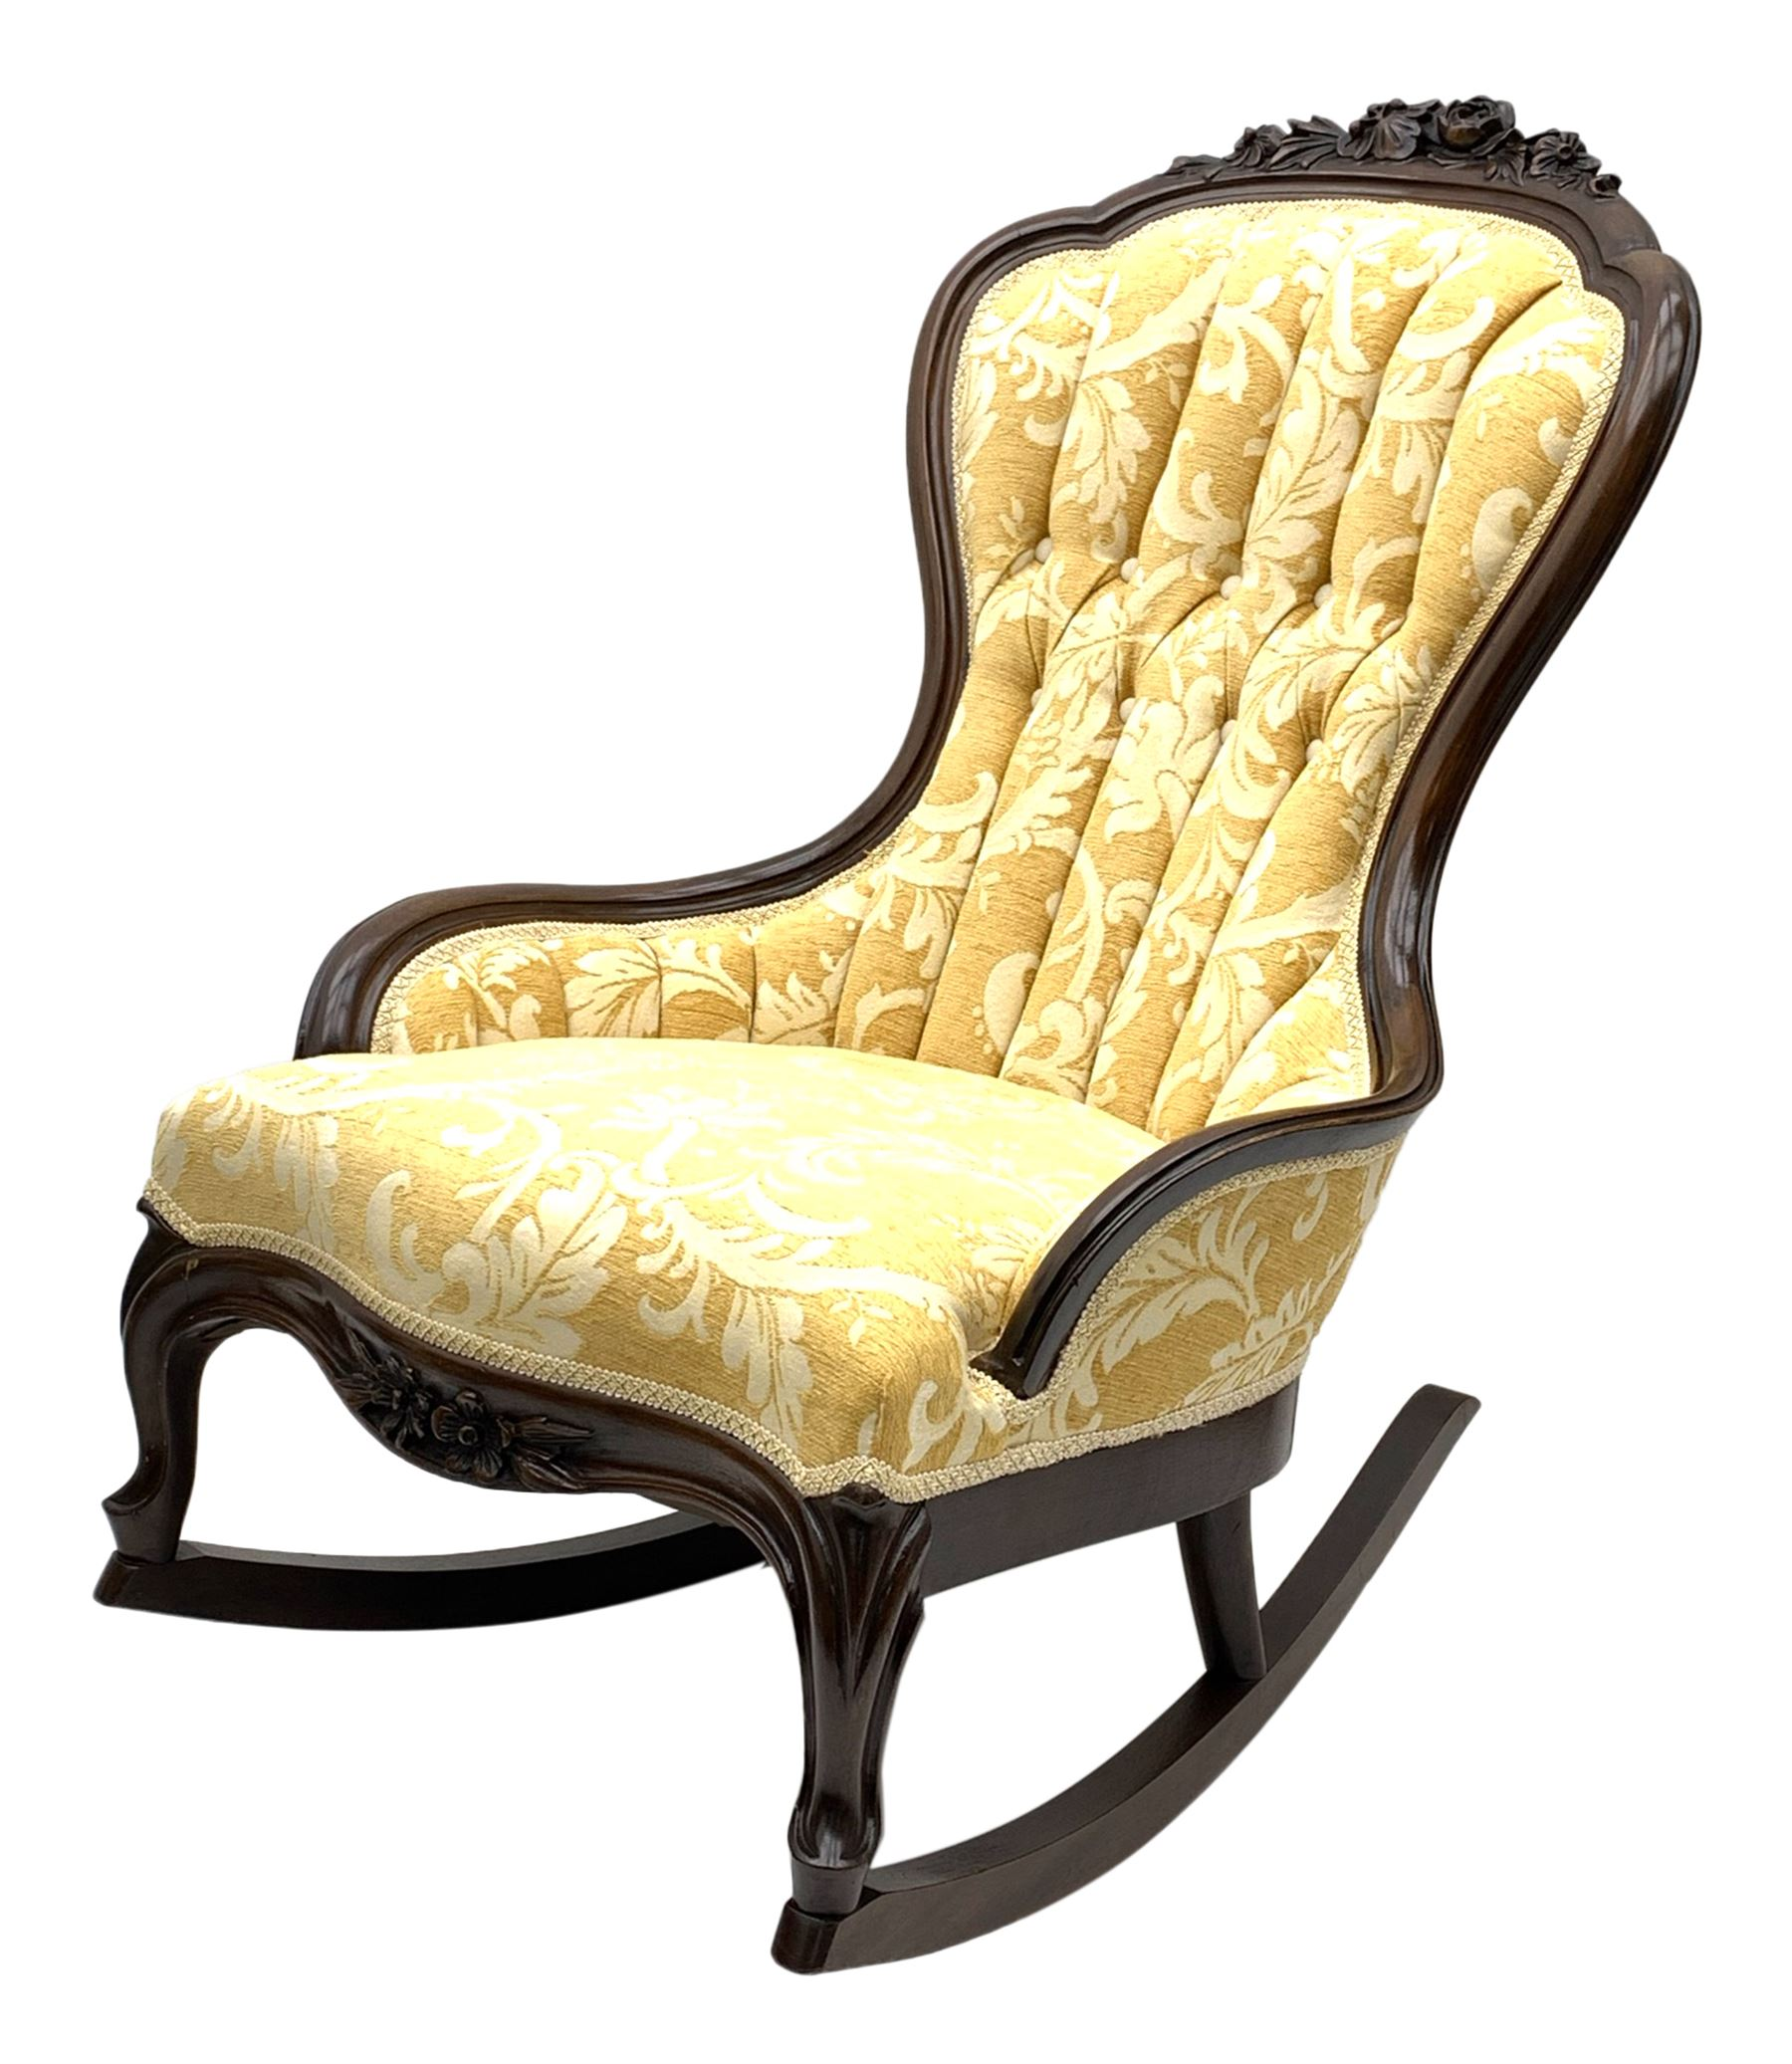 Early 20th century rocking chair with raised floral and foliate carving to frame